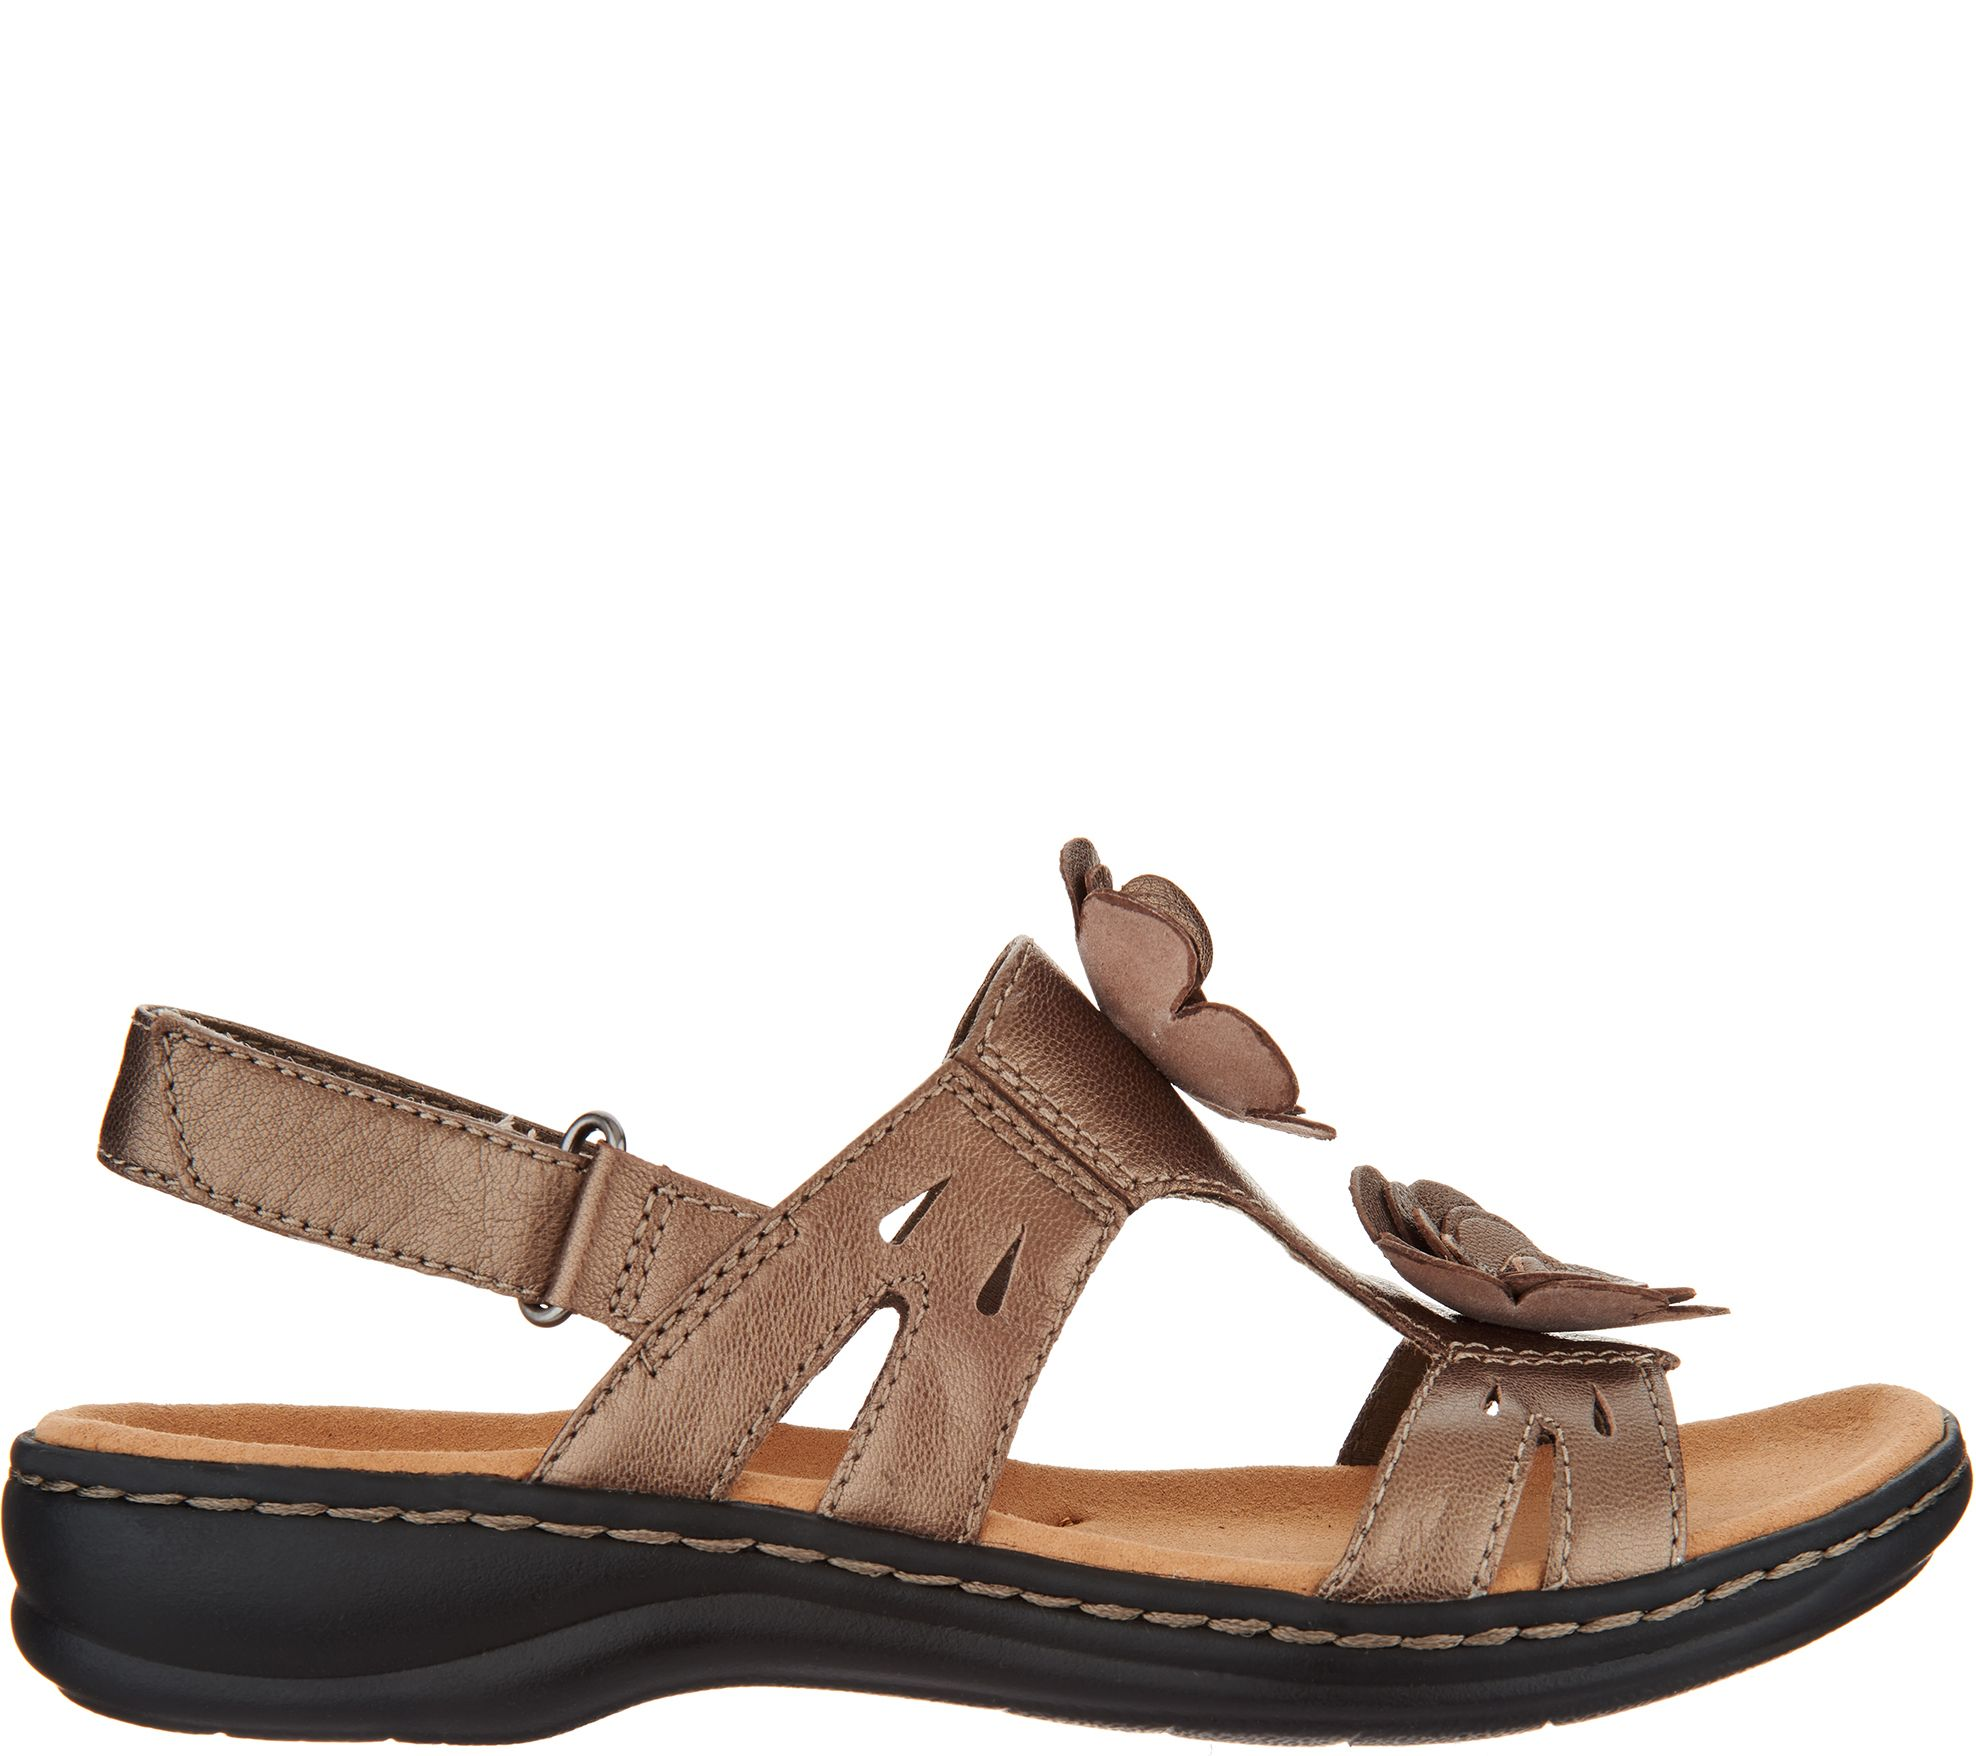 5b69ddda8768 Clarks Leather Lightweight Sandals with Flower Detail - Leisa Claytin -  Page 1 — QVC.com